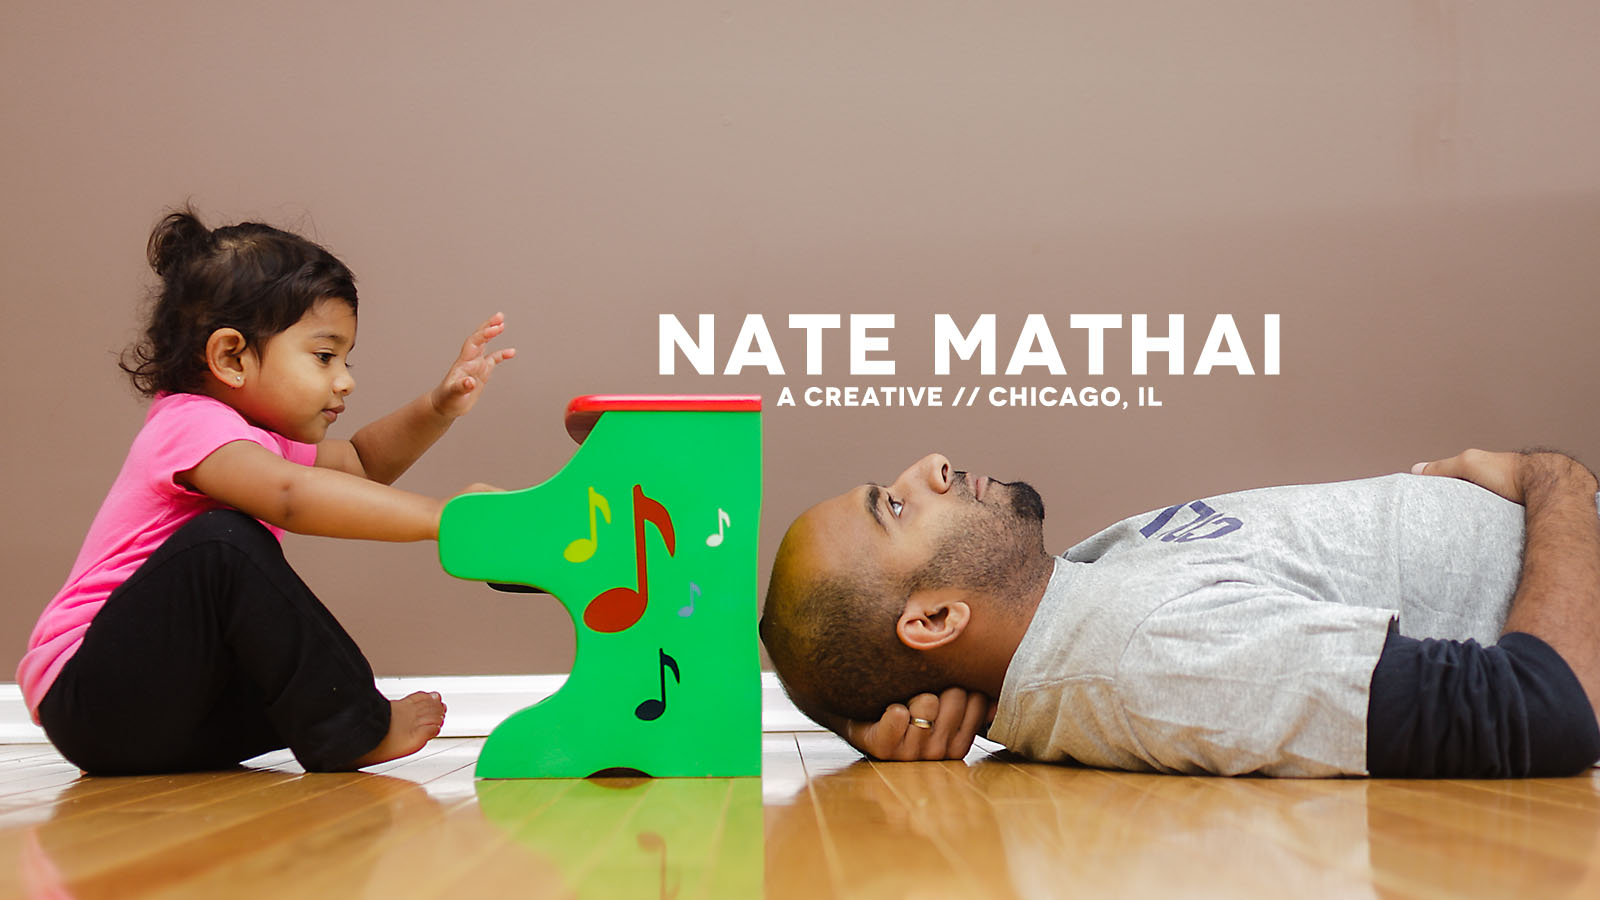 top image for Weight Lifting by chicago wedding photographer nate mathai